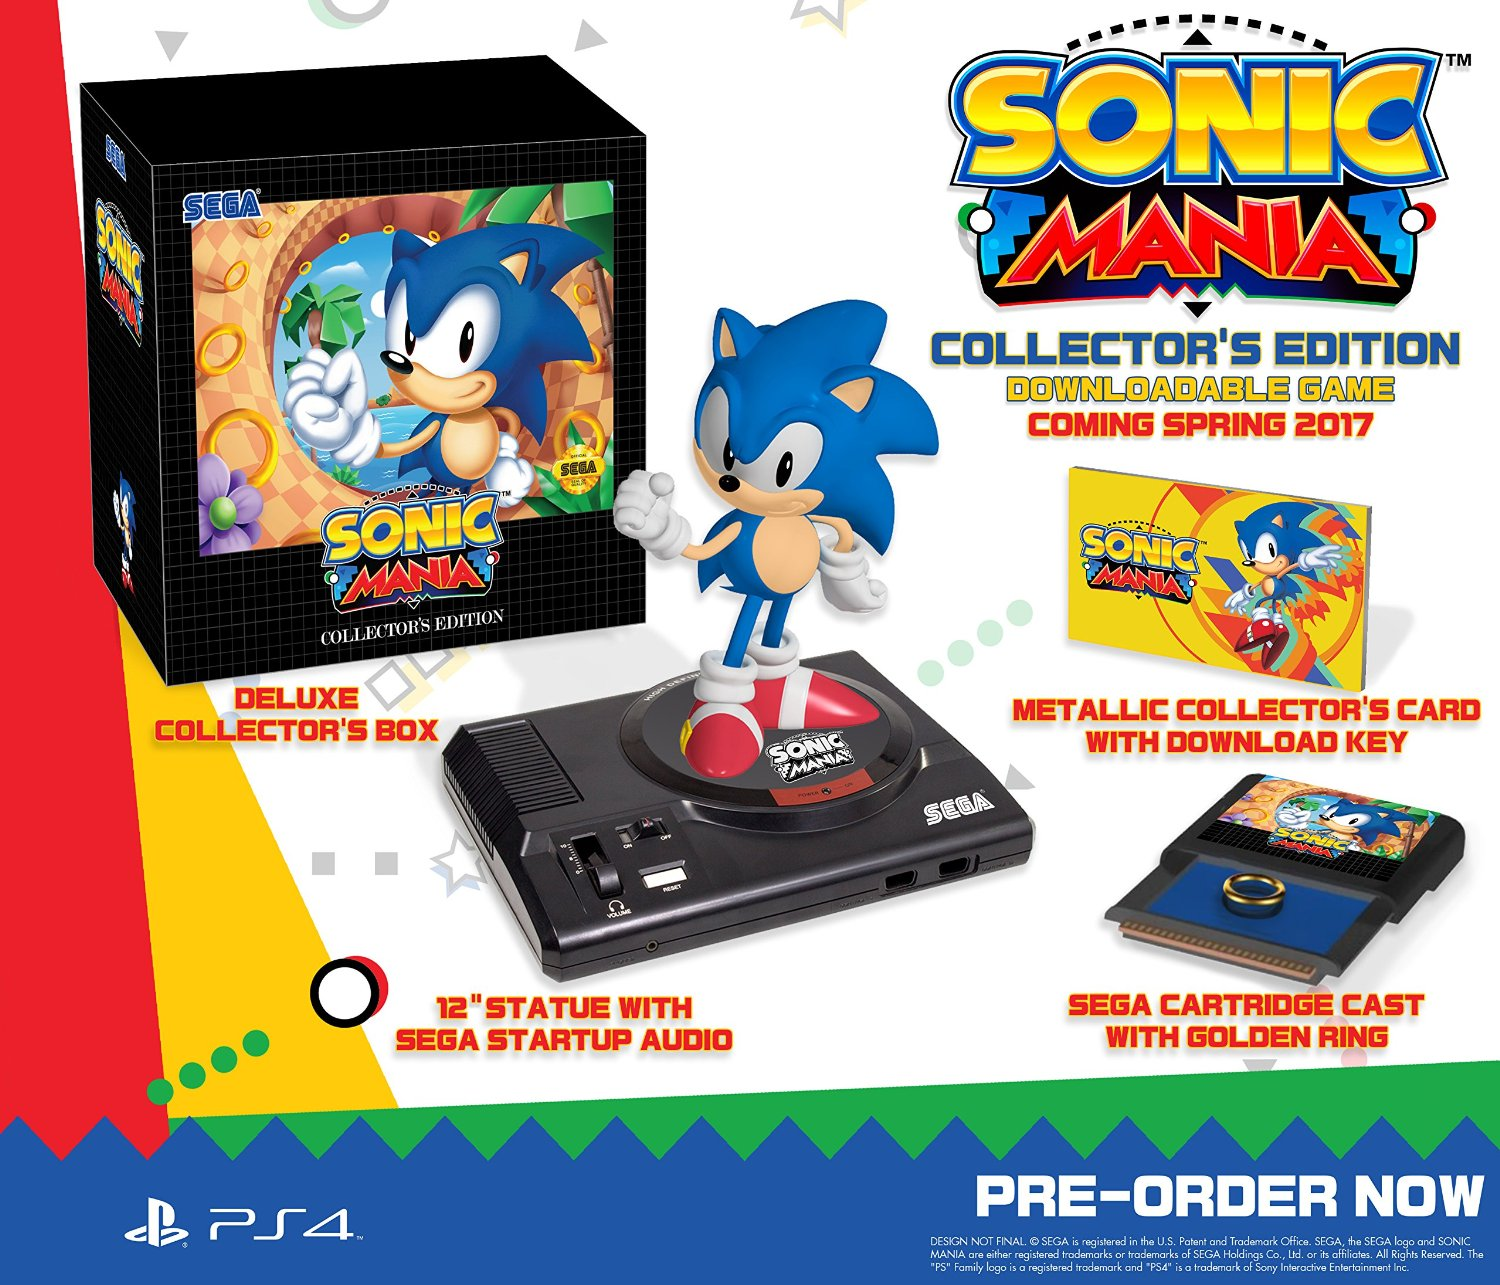 Sonic Mania's Collector's Edition is the best Collector's Edition I've ever seen